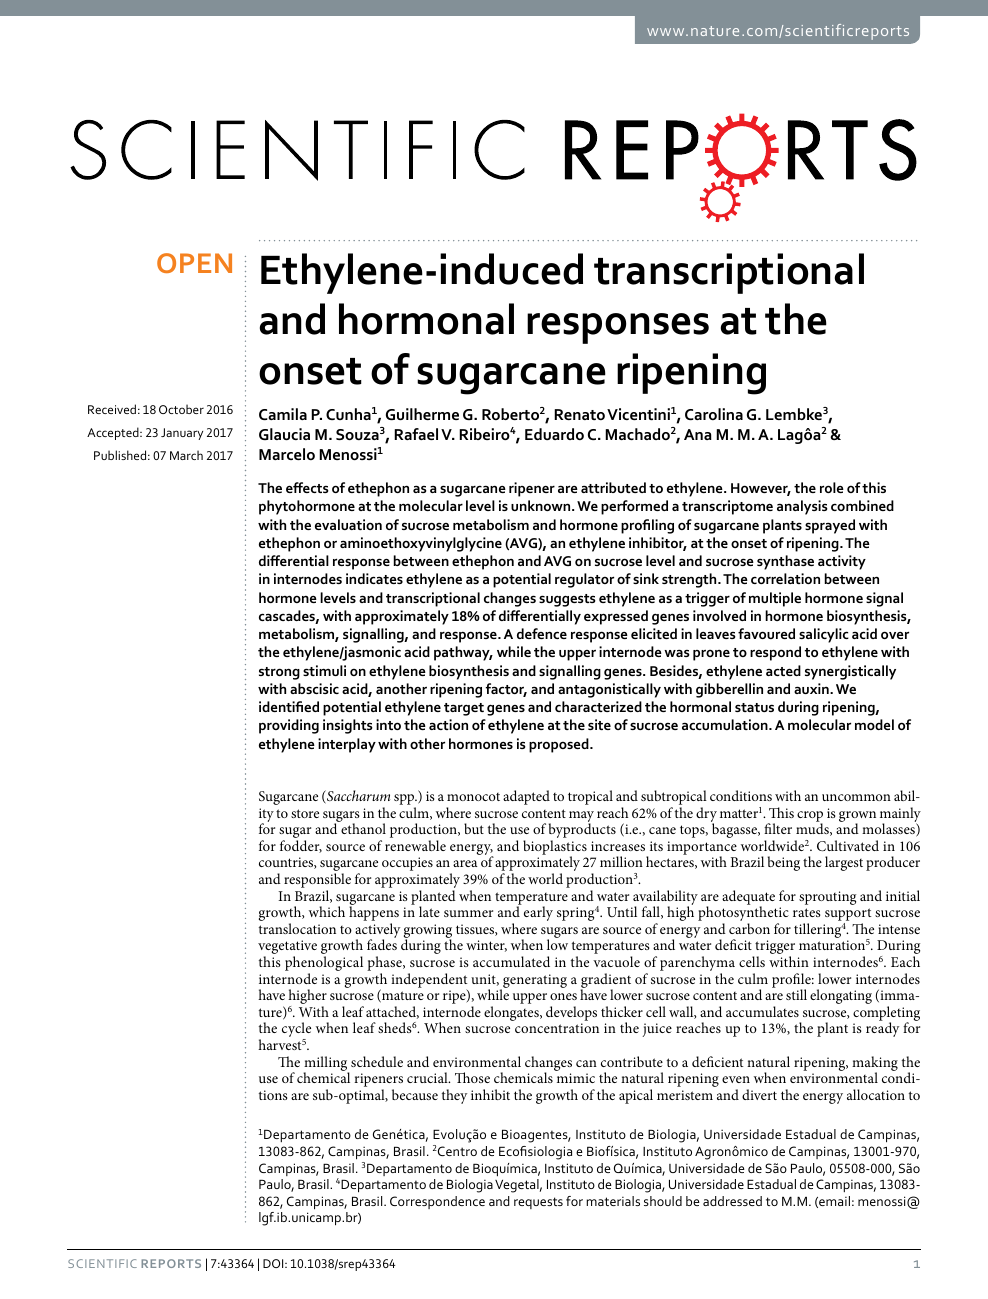 Ethylene-induced transcriptional and hormonal responses at